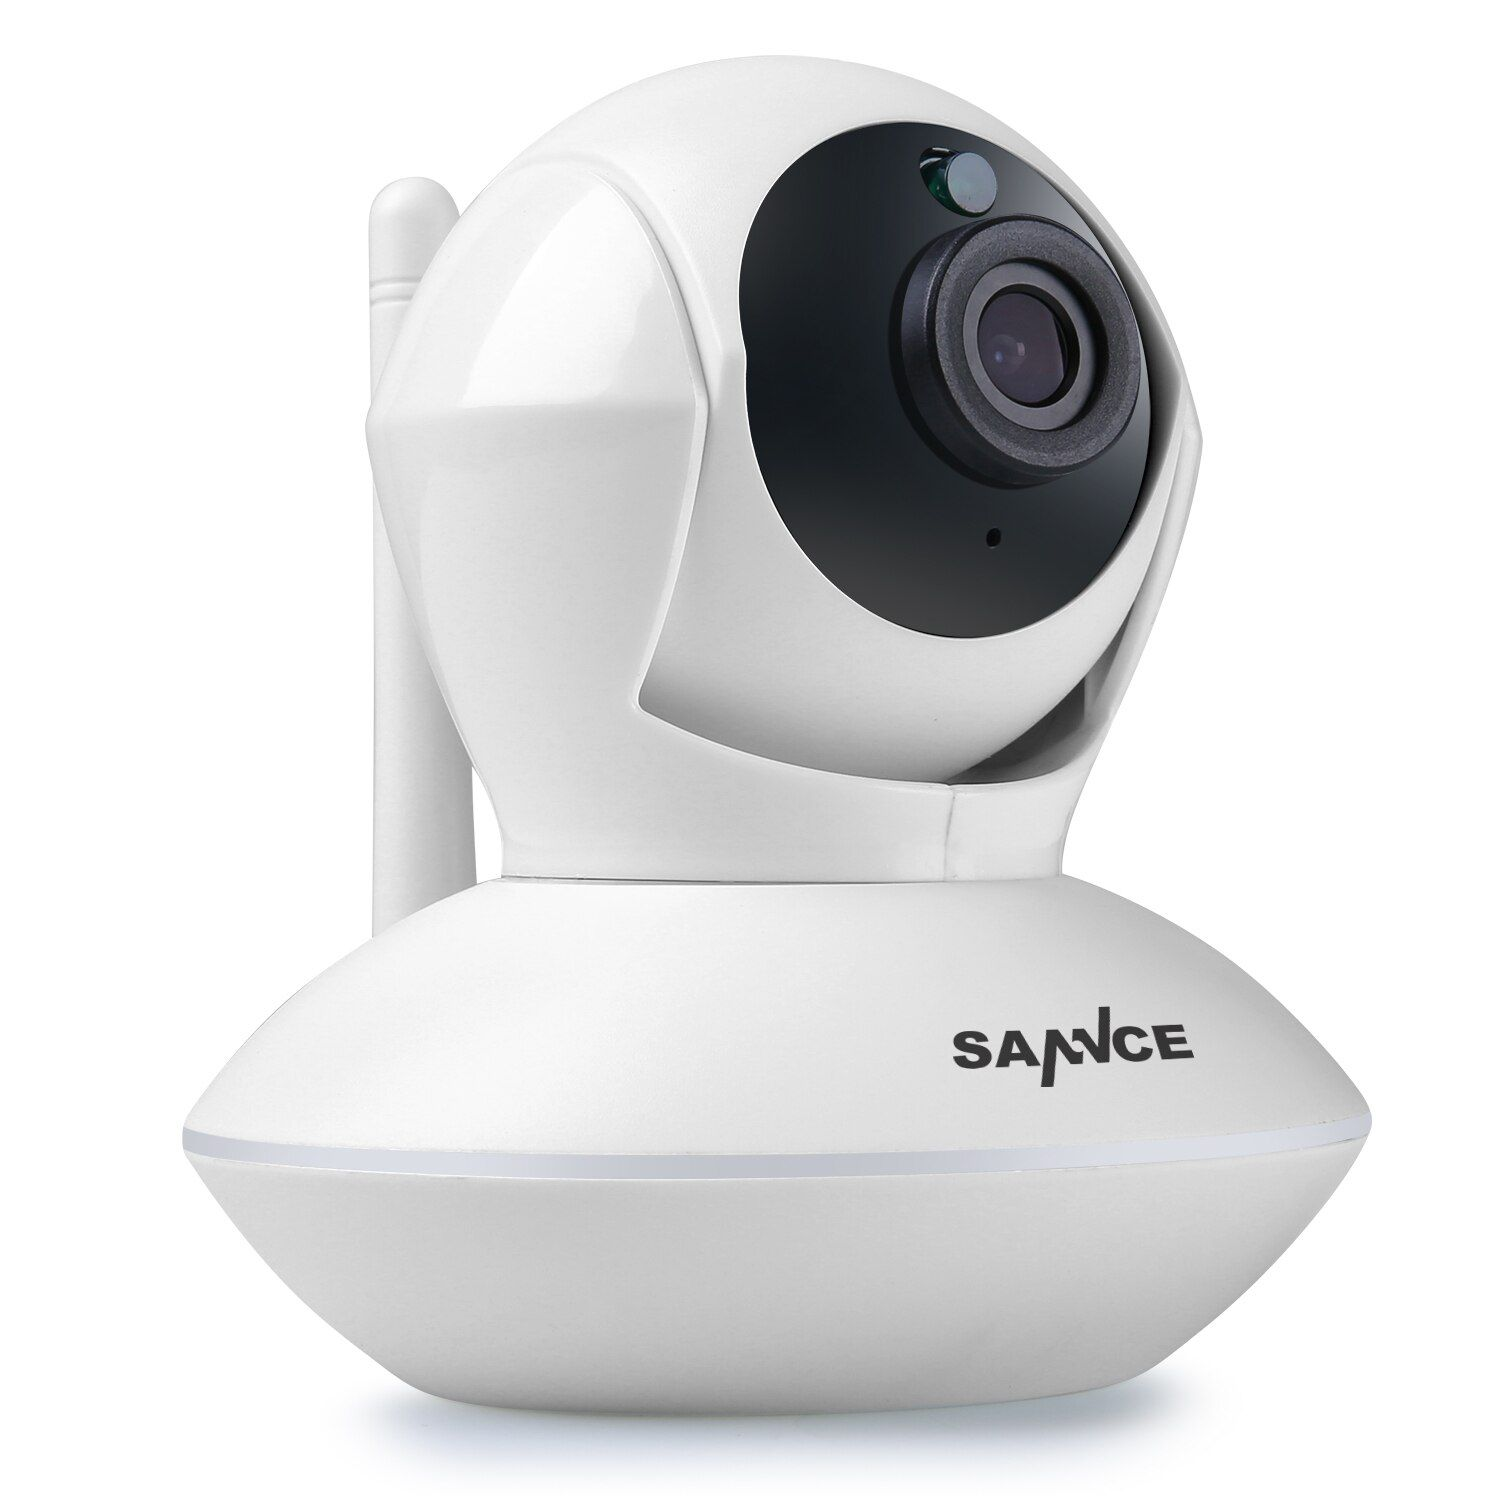 SANNCE 915MHz Super Wireless Alarm IP Camera 720P Wi-Fi Wireless Network Surveillance Wifi Defender Baby Monitor CCTV Camera